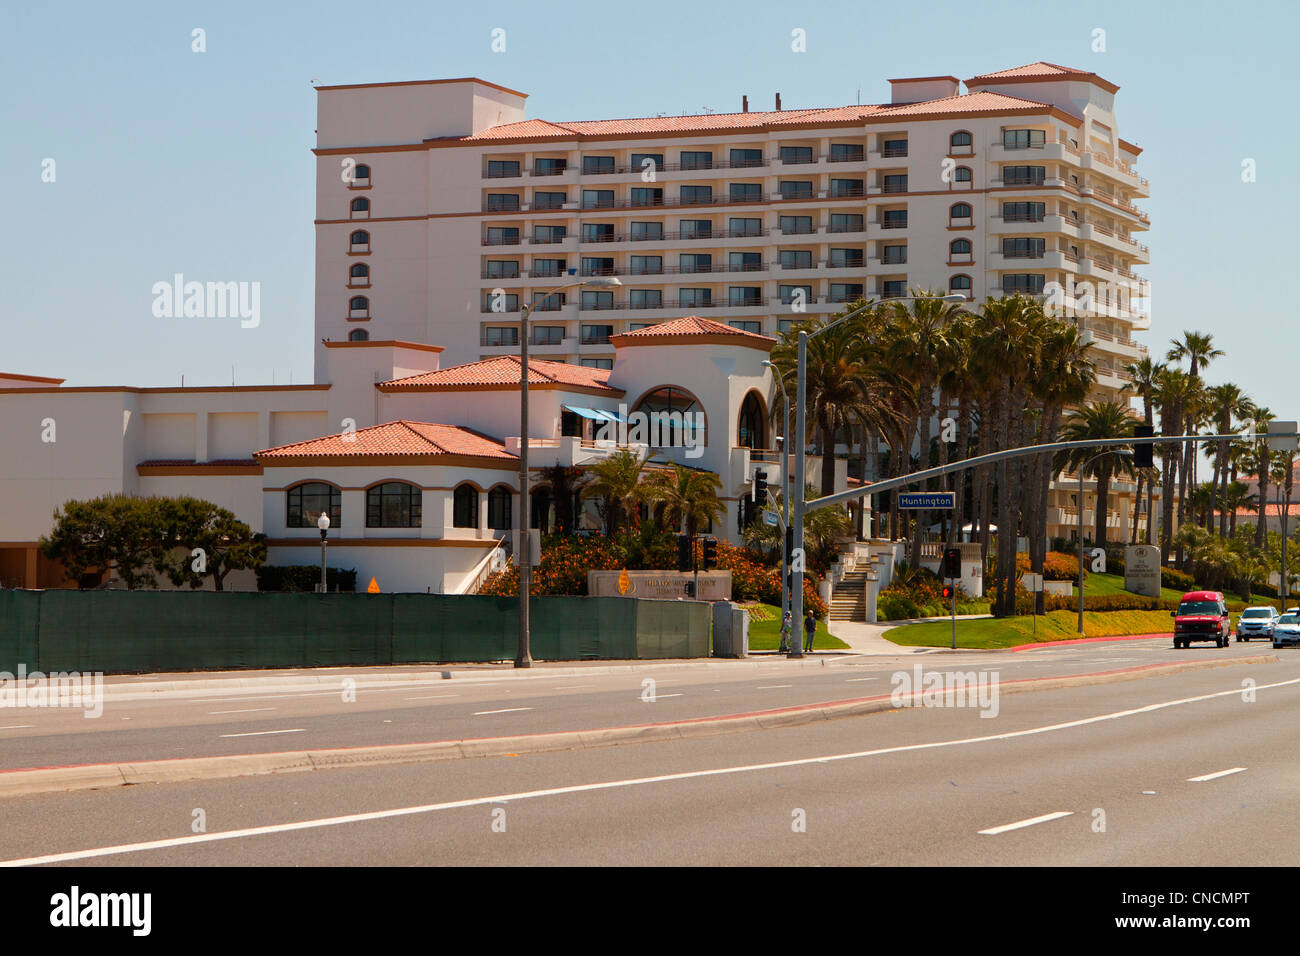 Sea View Hotel Rooms Stock Photos & Sea View Hotel Rooms Stock ...